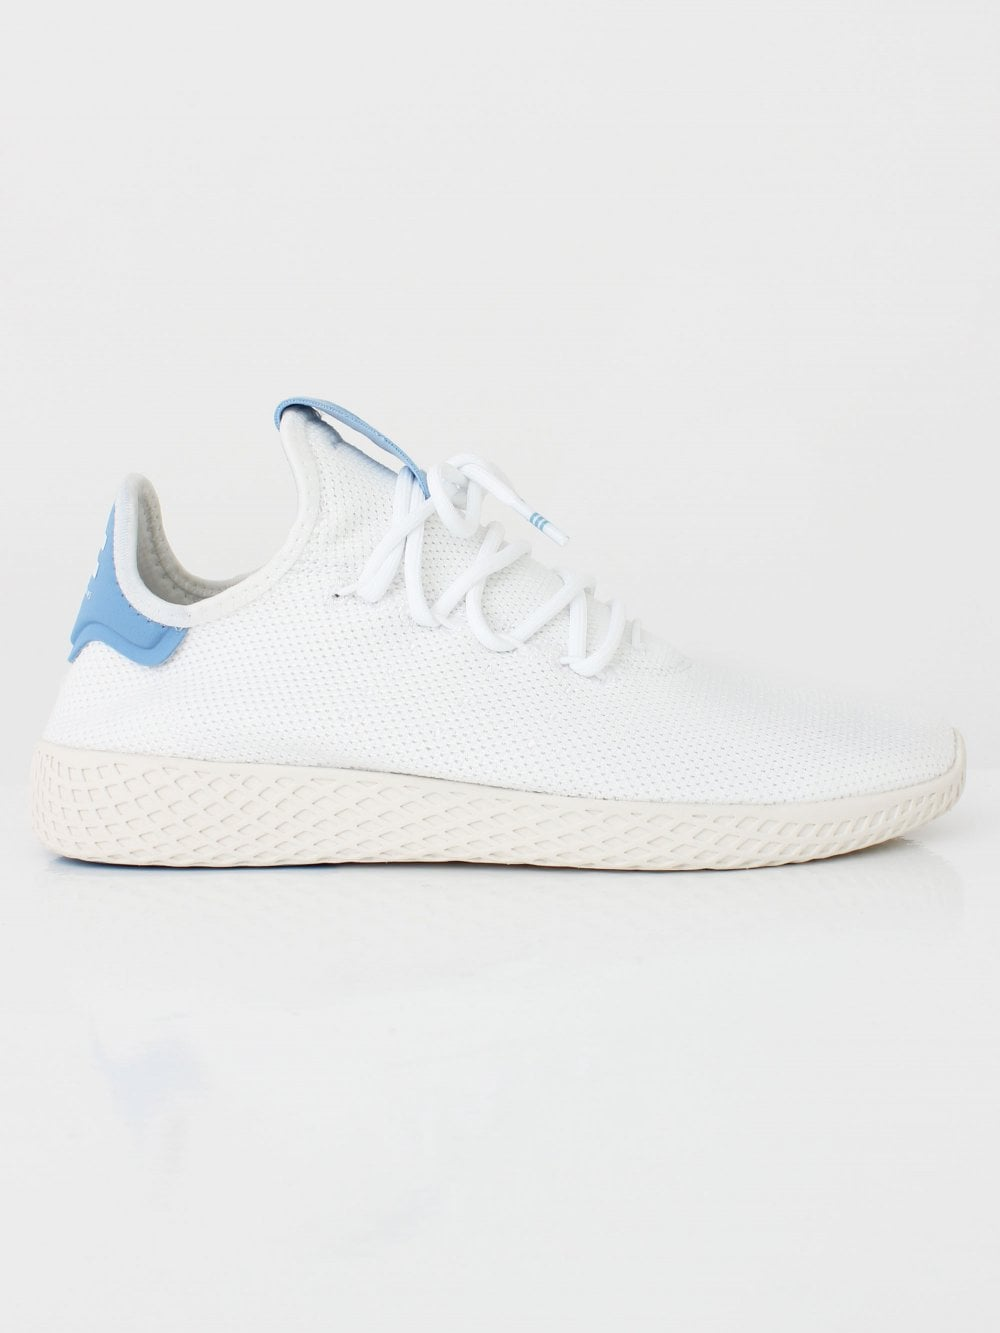 cb129ff0c22a0 AdidasxPharrell Pharrell Williams Tennis HU in White Blue